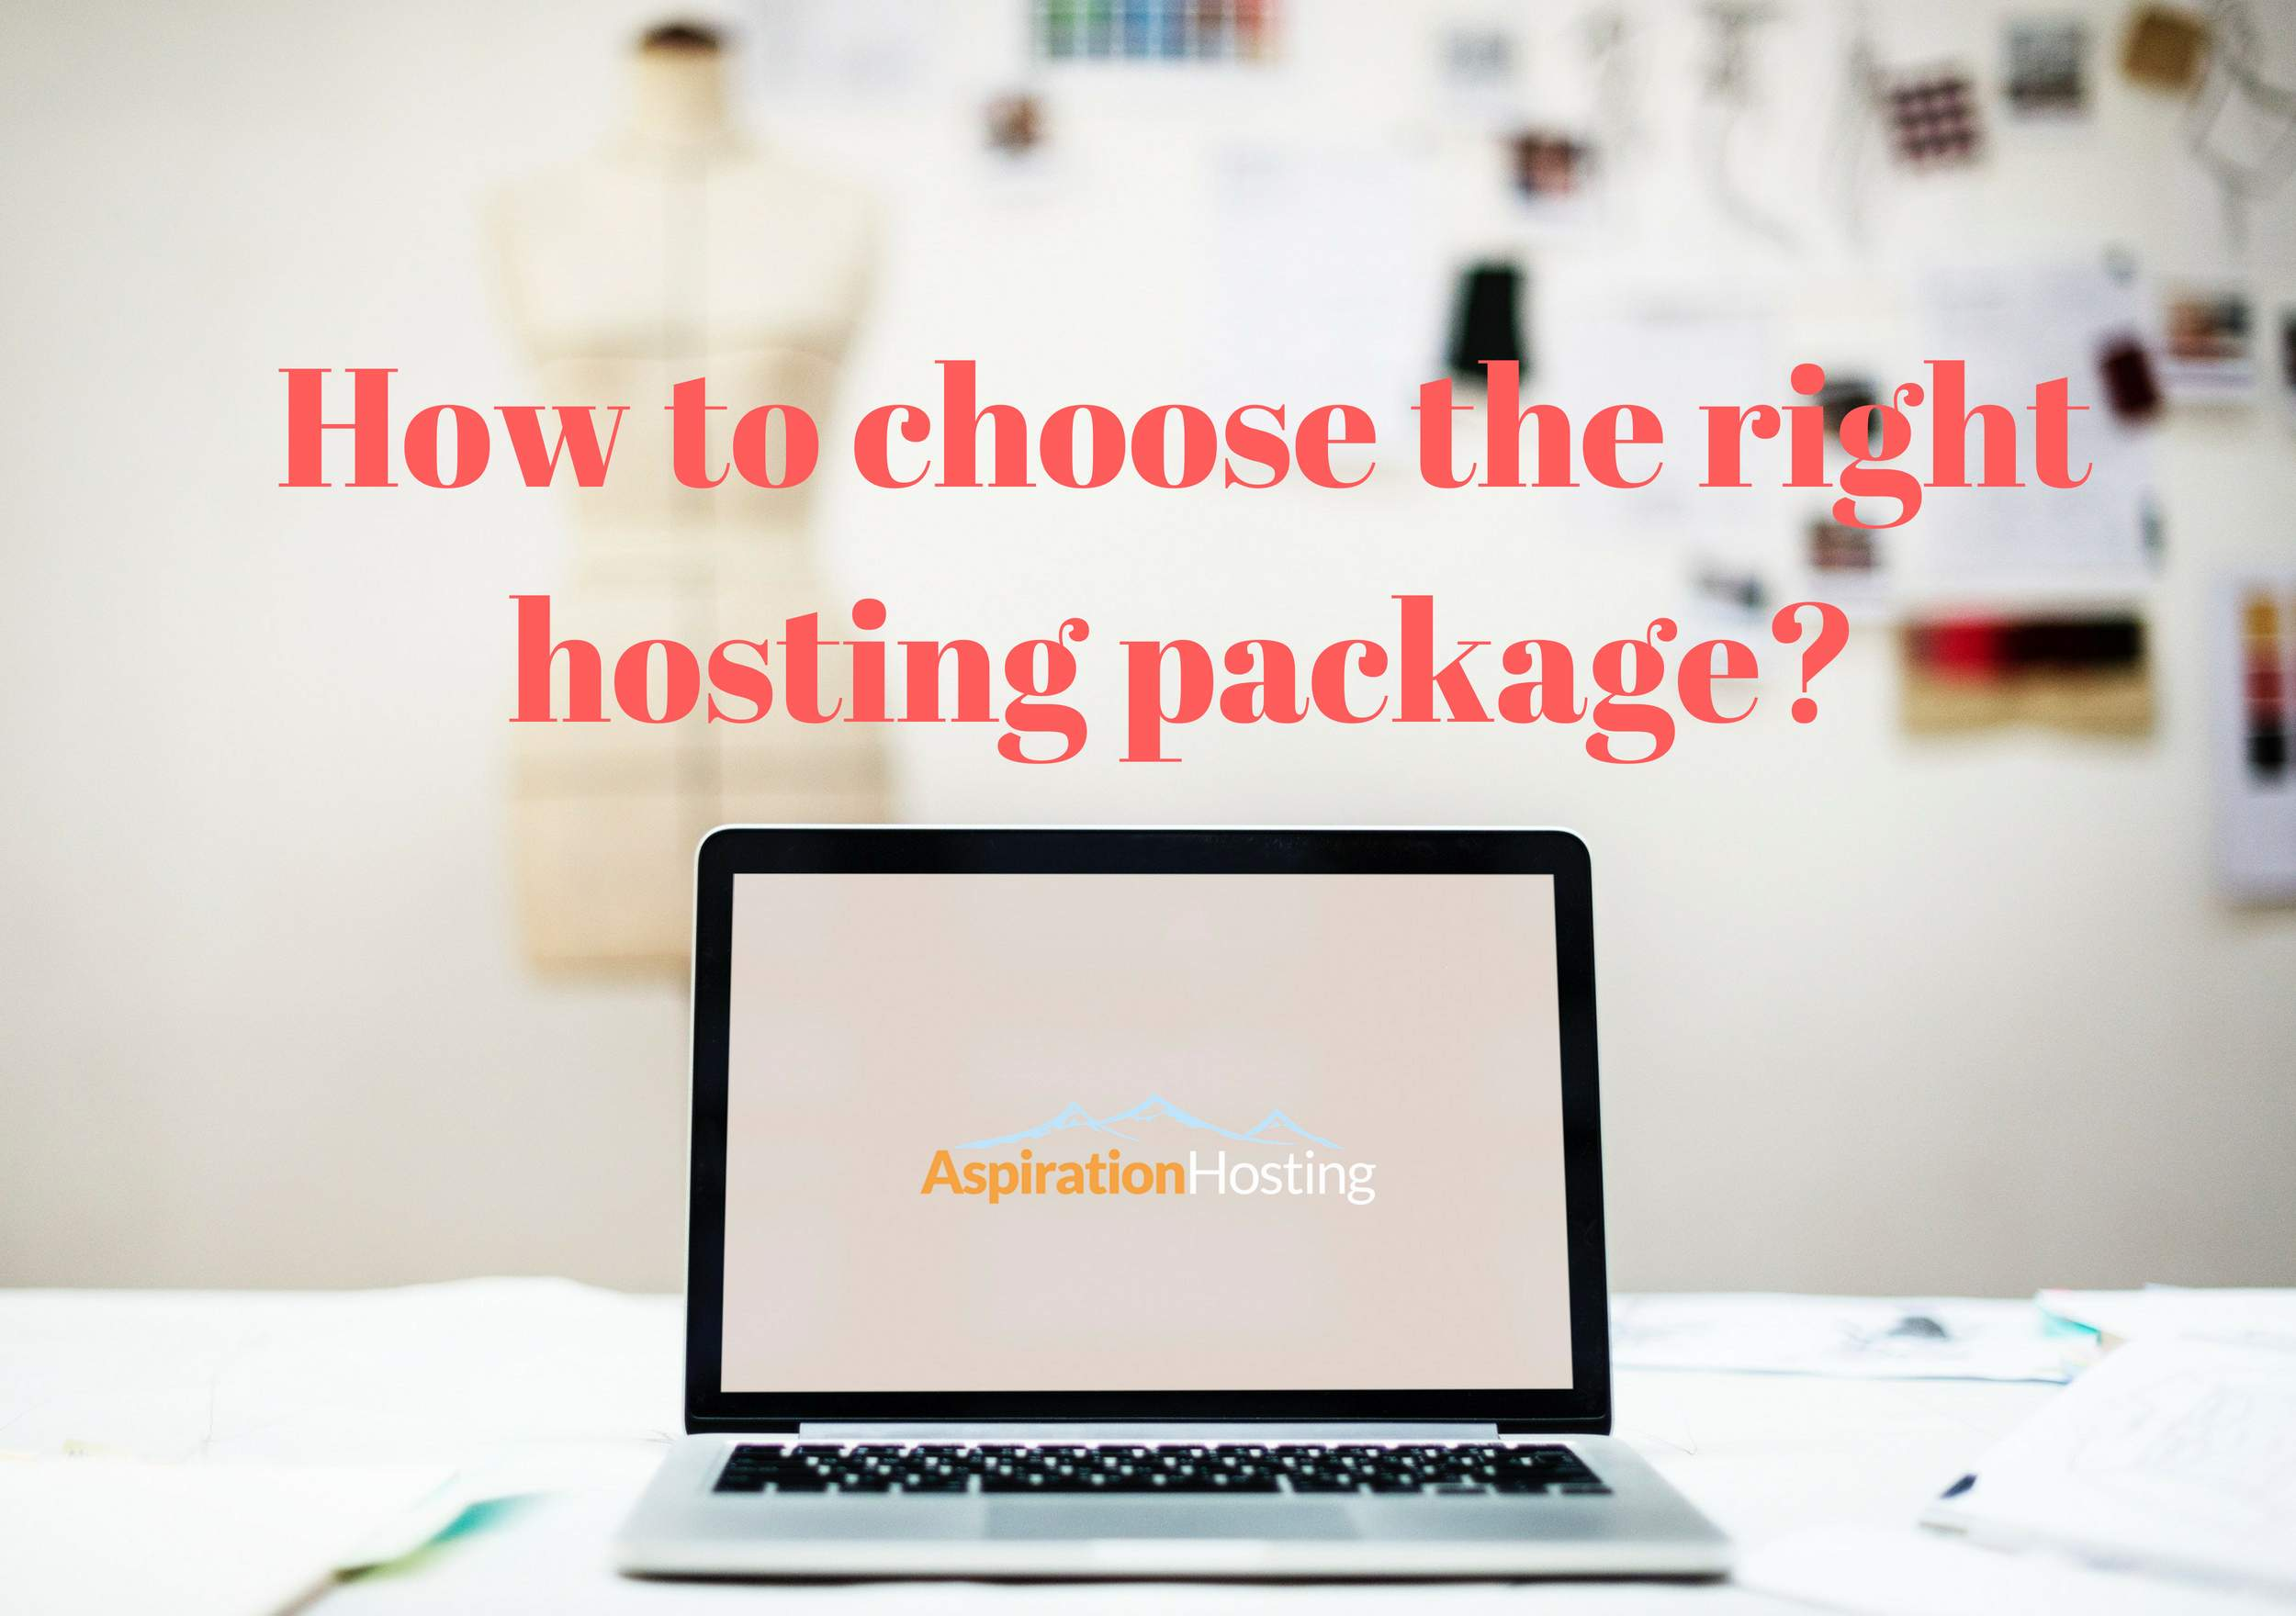 How to Choose the Right Hosting Package for Your Website